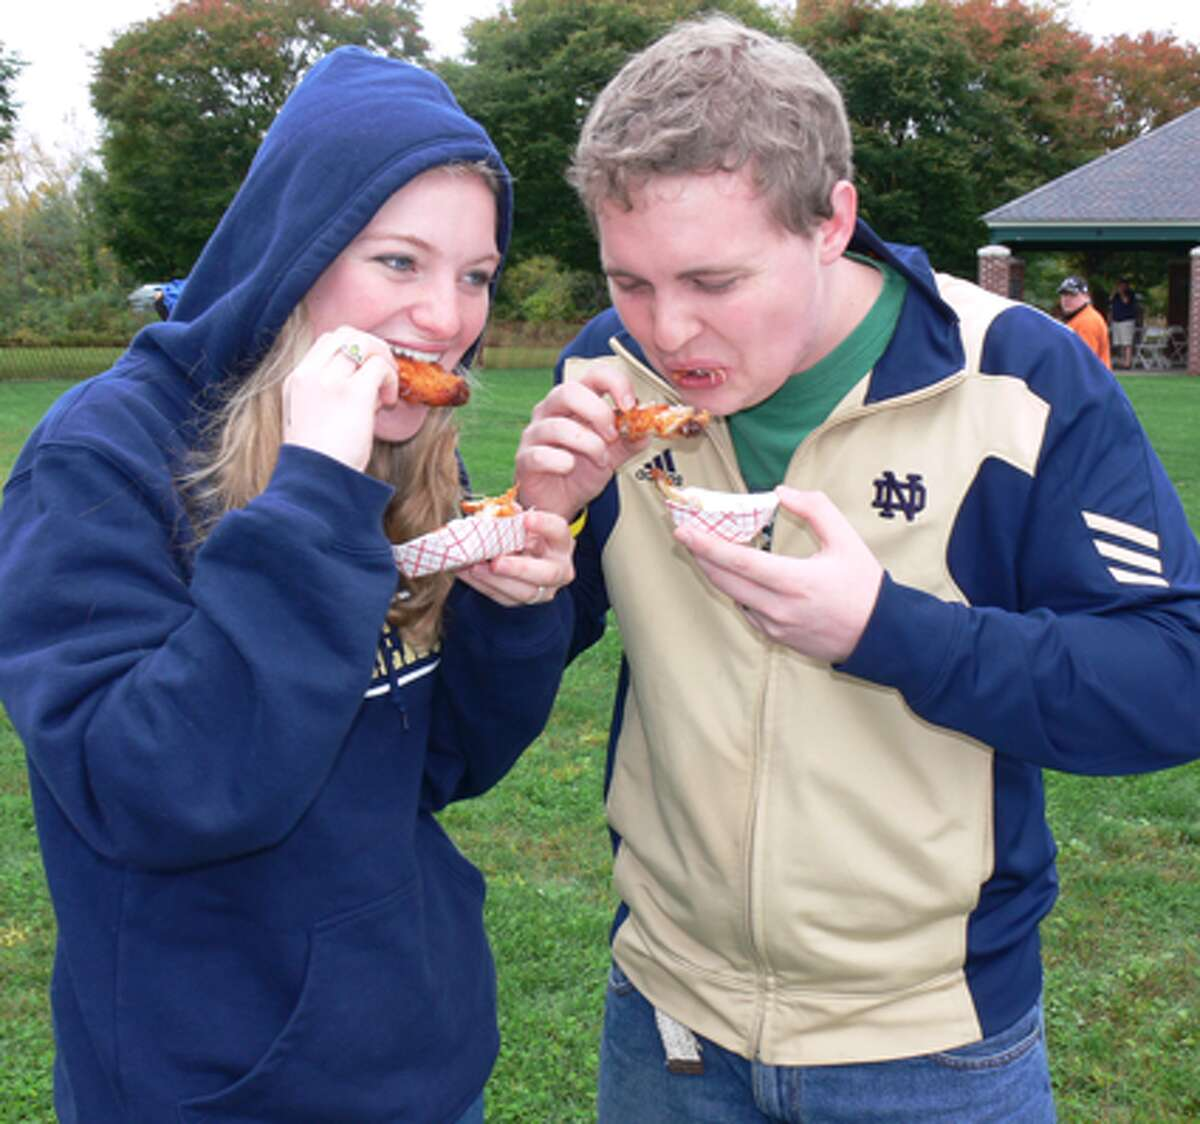 Sarah and husband Brad Crilley of Derby show they know how to down some wings.